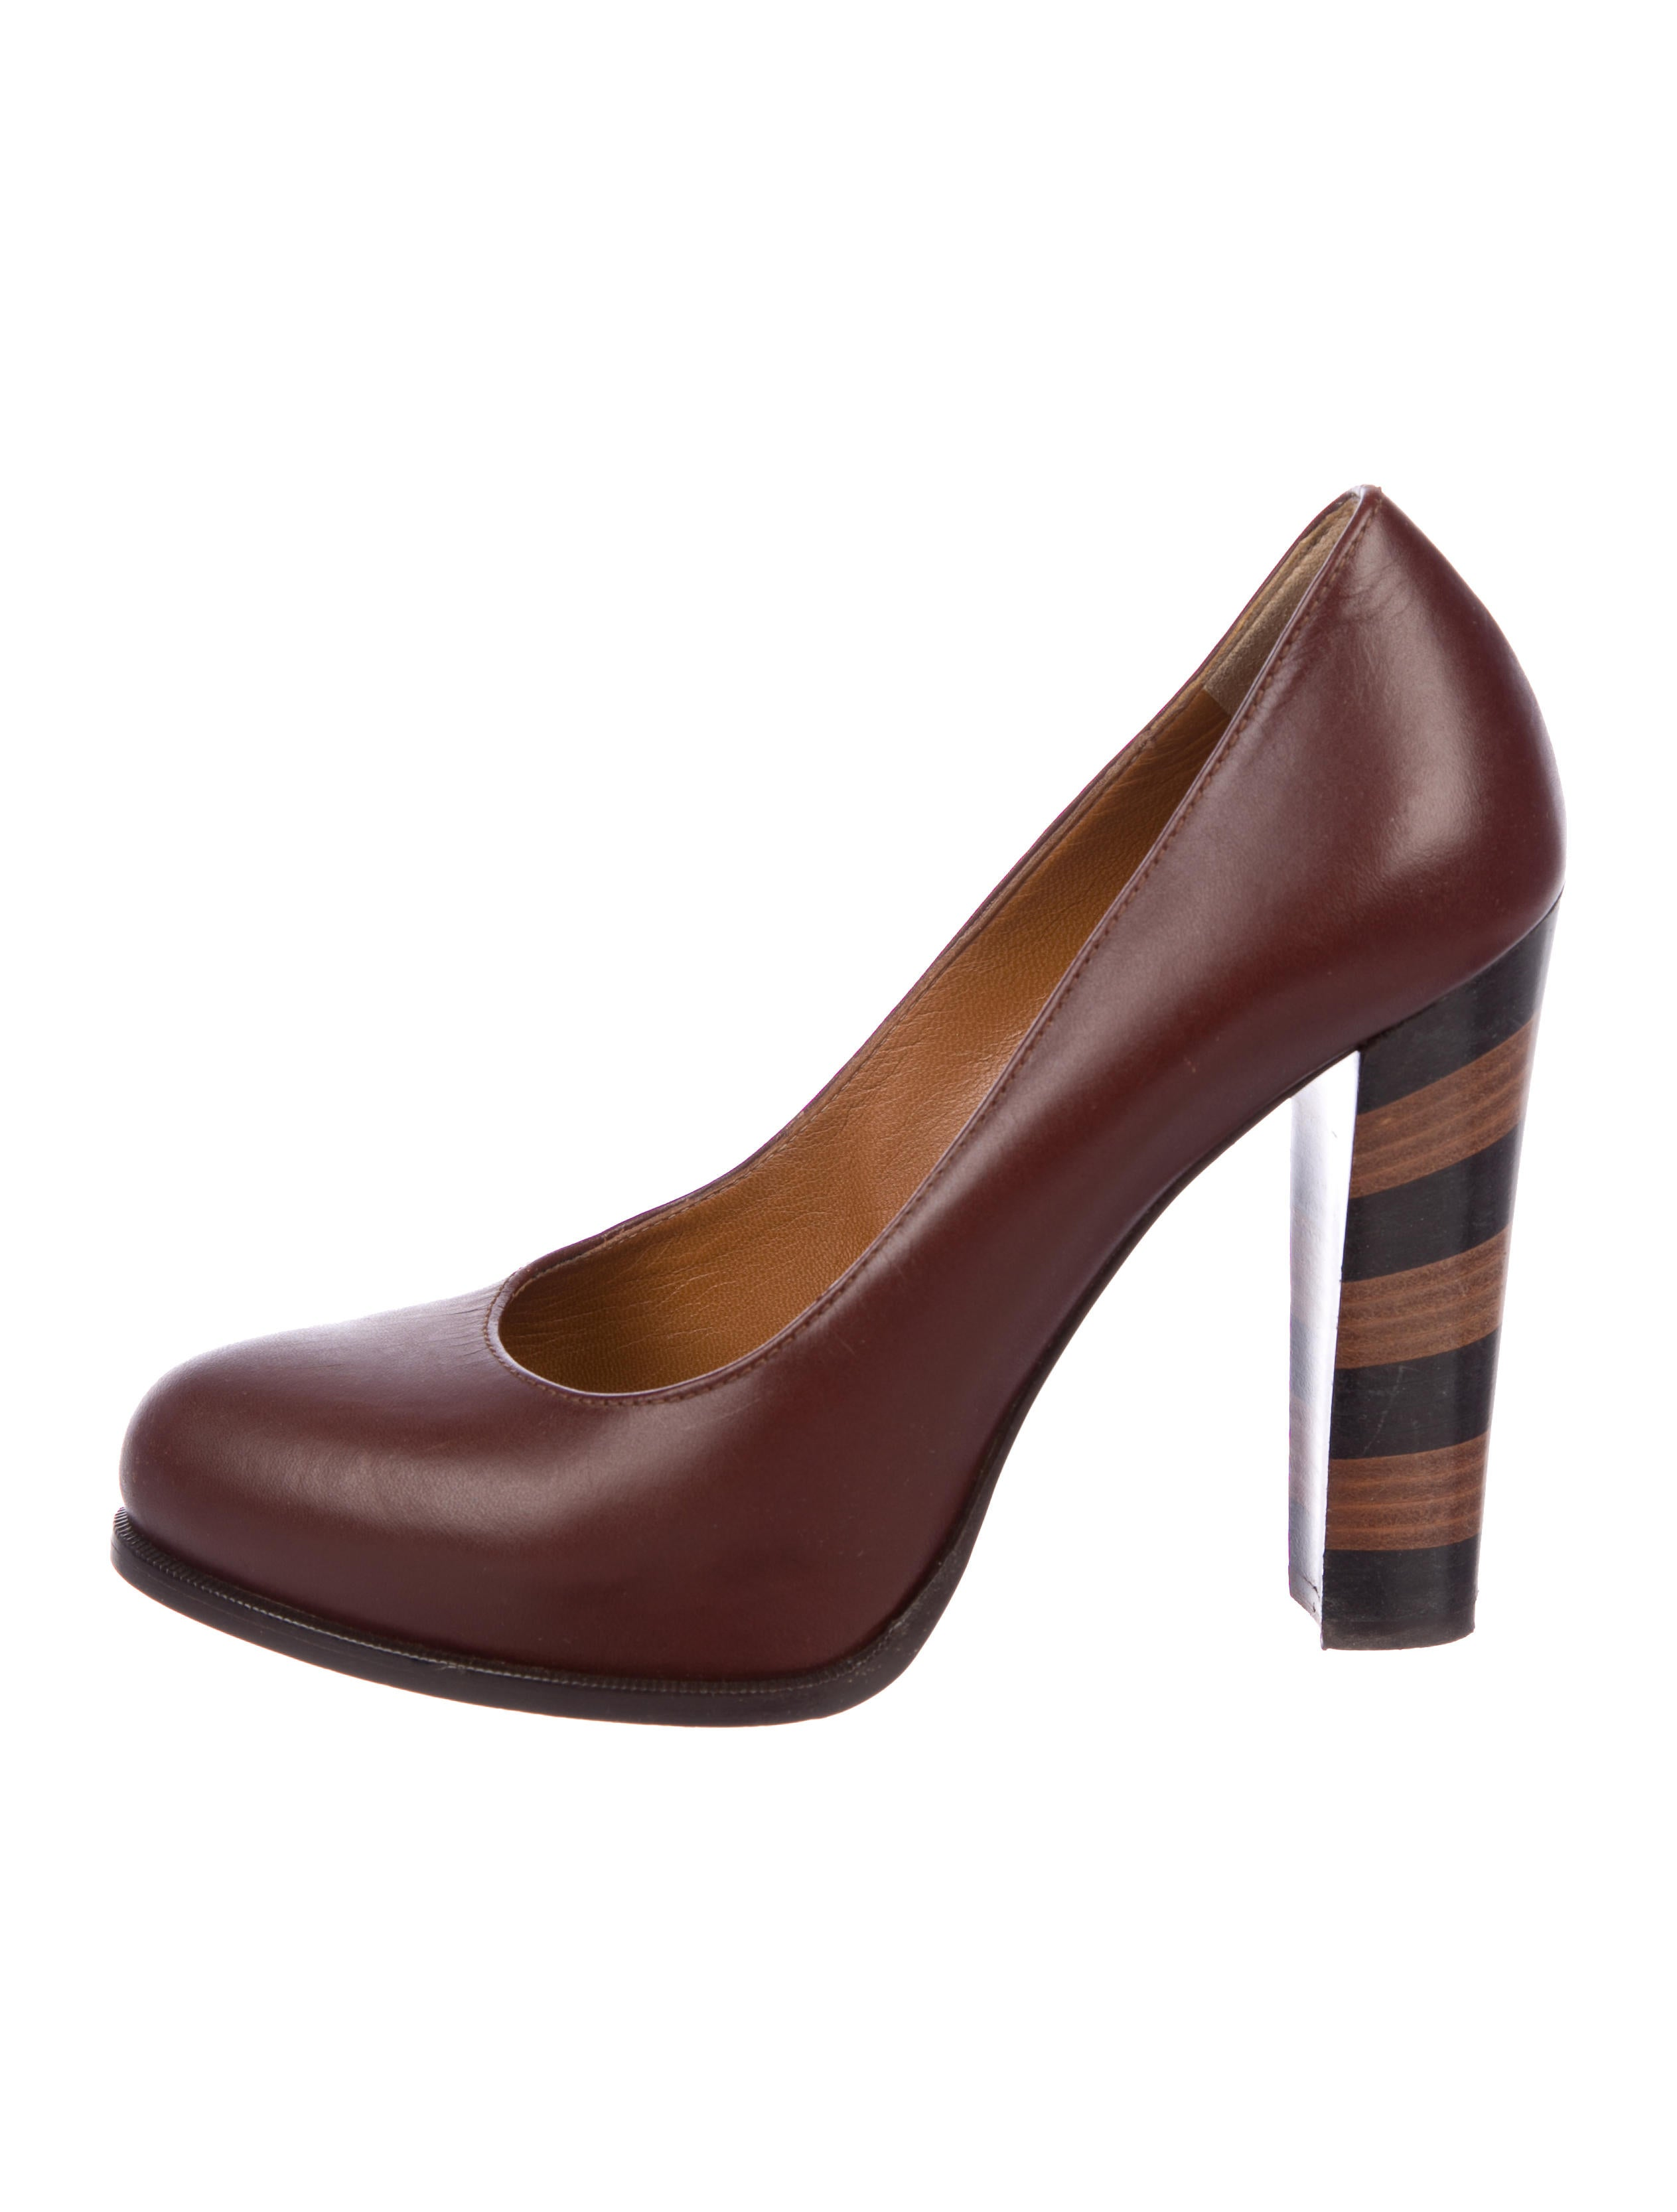 latest cheap online Fendi Leather Round-Toe Pumps clearance genuine S67GJY9m